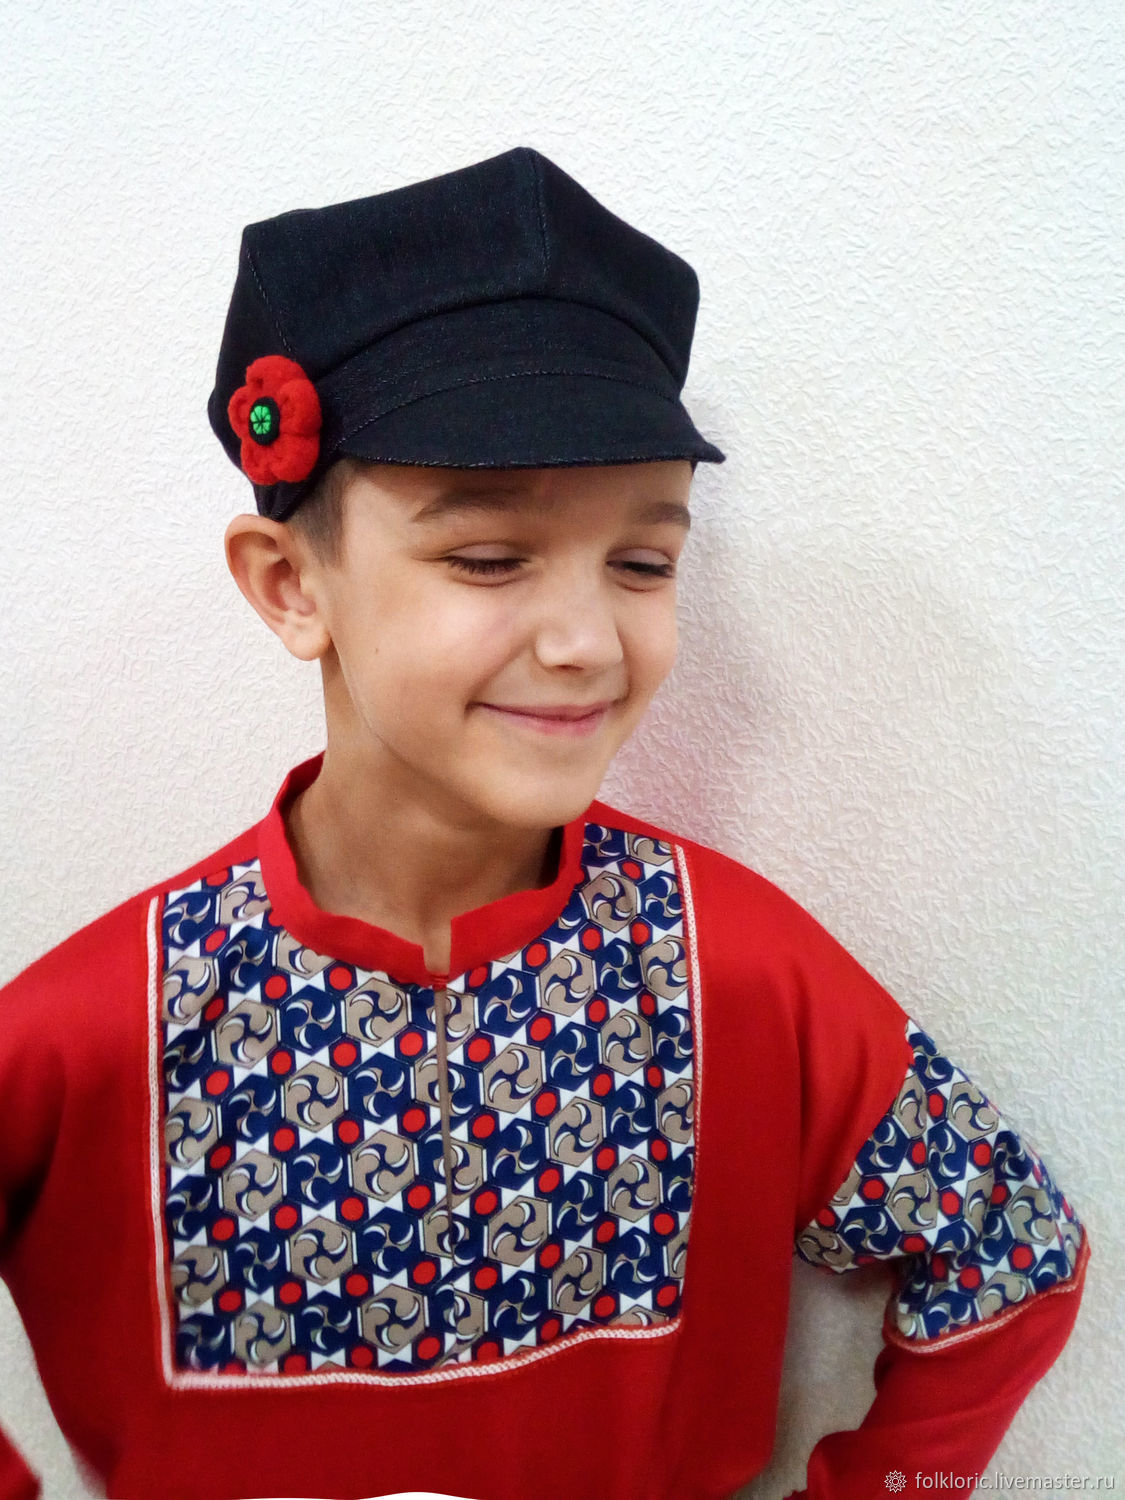 Children s Dance Costumes handmade. Cap Russian national men s headwear.  FOLKLORIC. 85f684ab4df